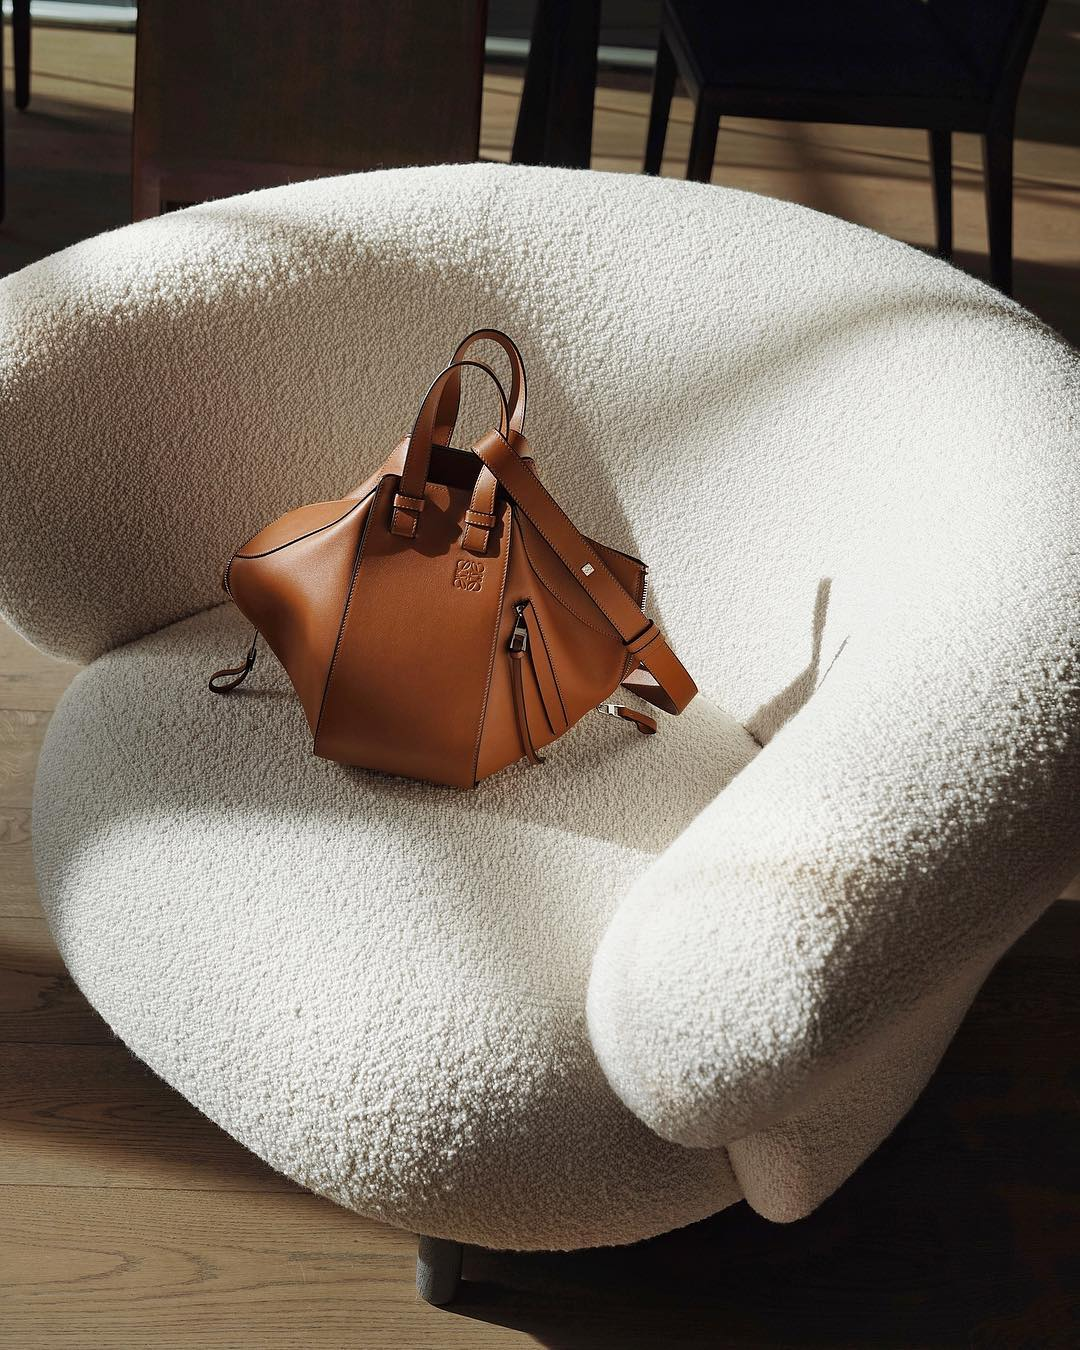 25 of the Most Stylish Camel Bags to Shop Now